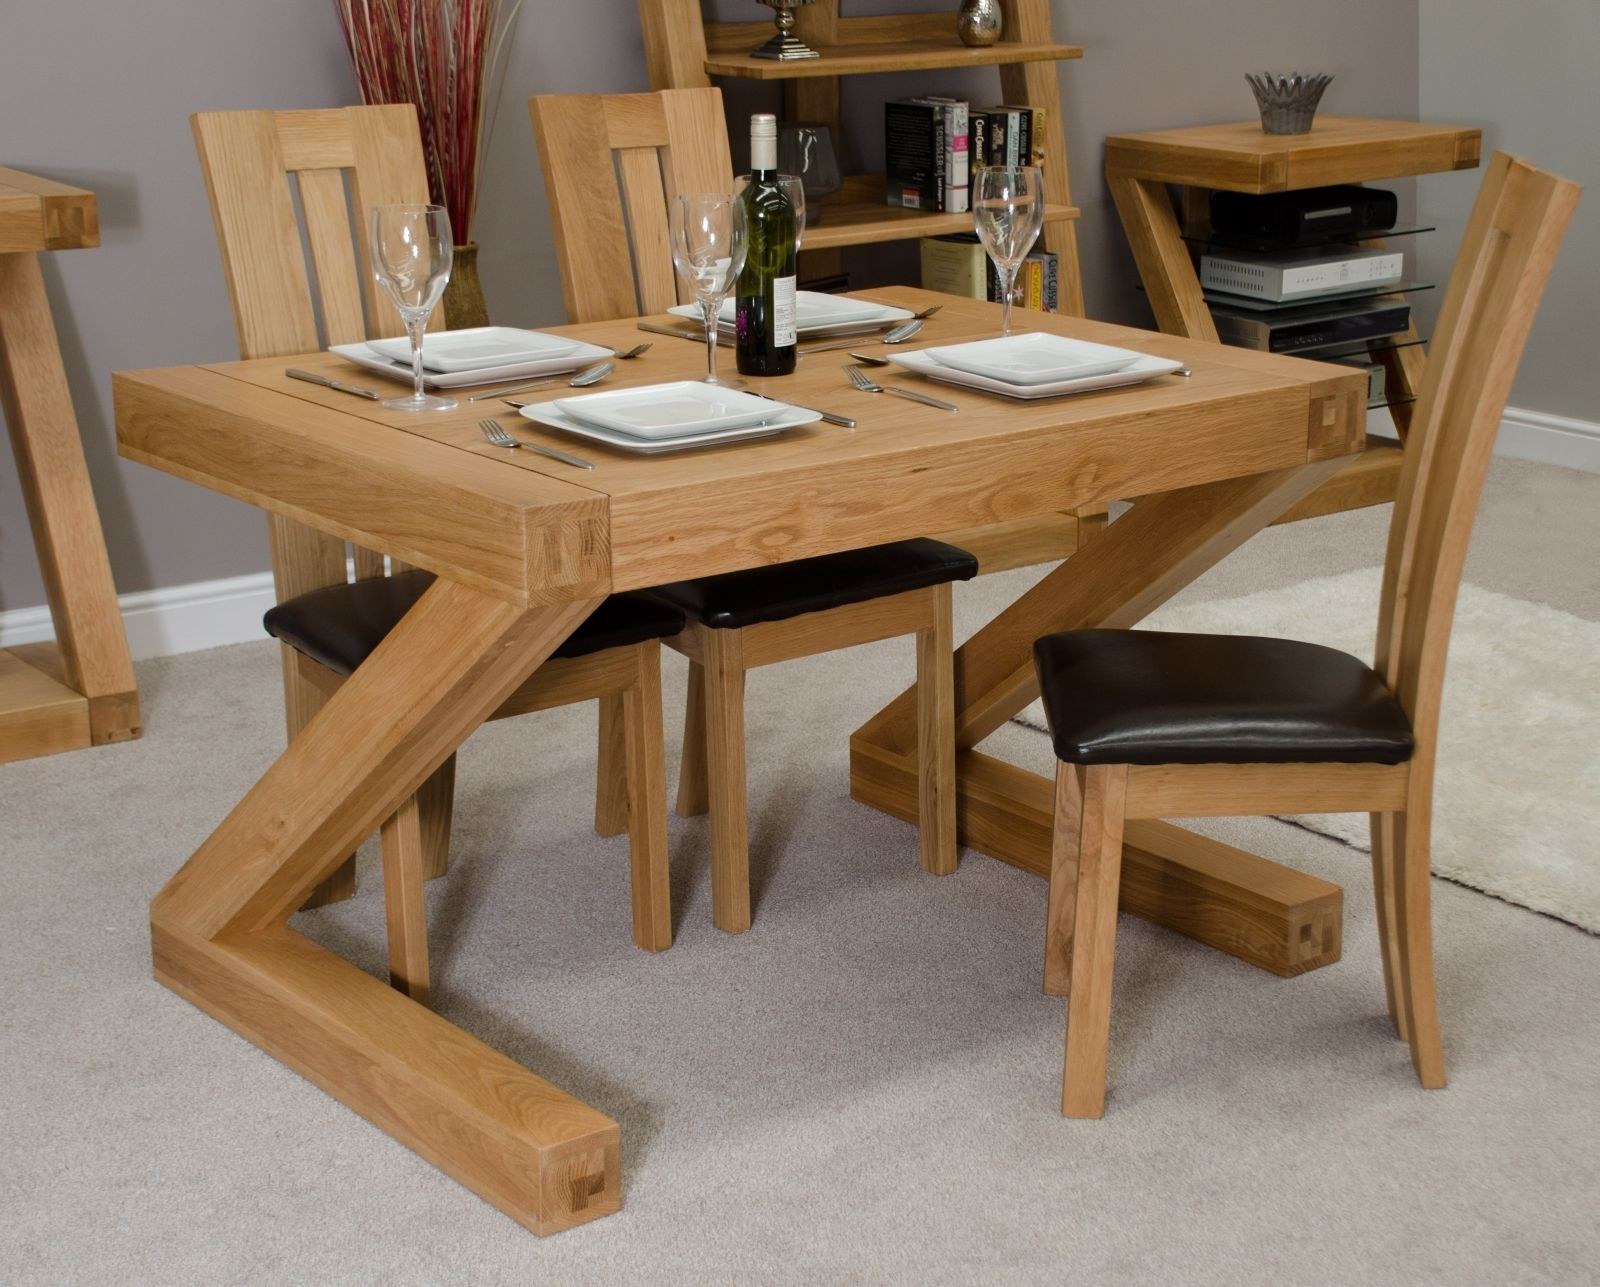 Wooden space saver dining set with cushion on chair and unique table bases